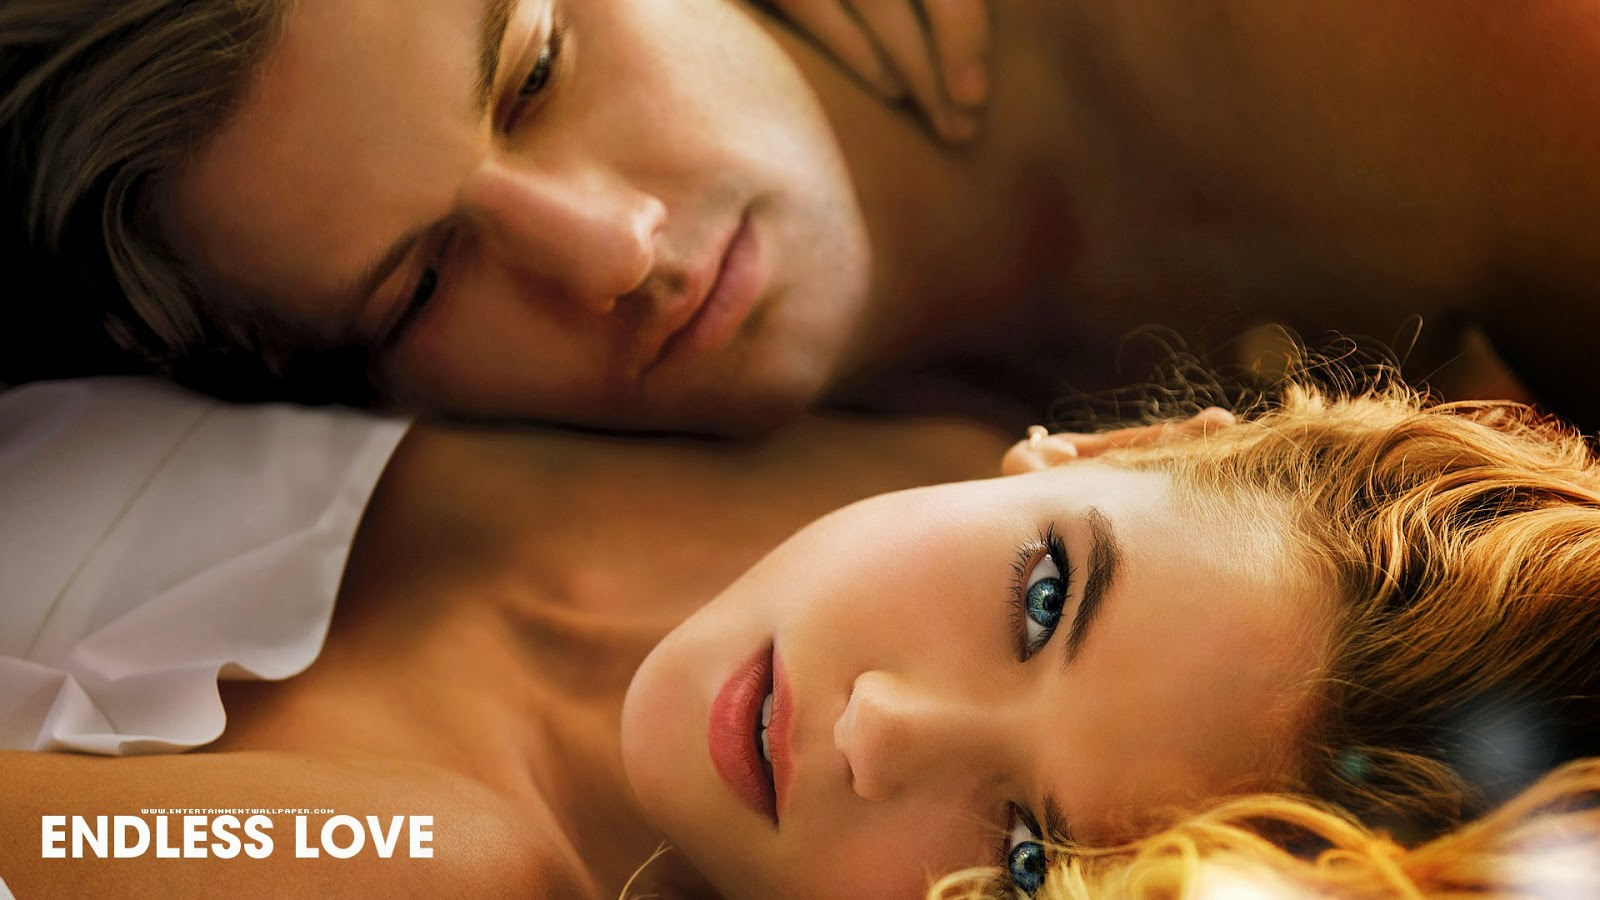 ... addicted to love for the film endless love 2014 movie free download